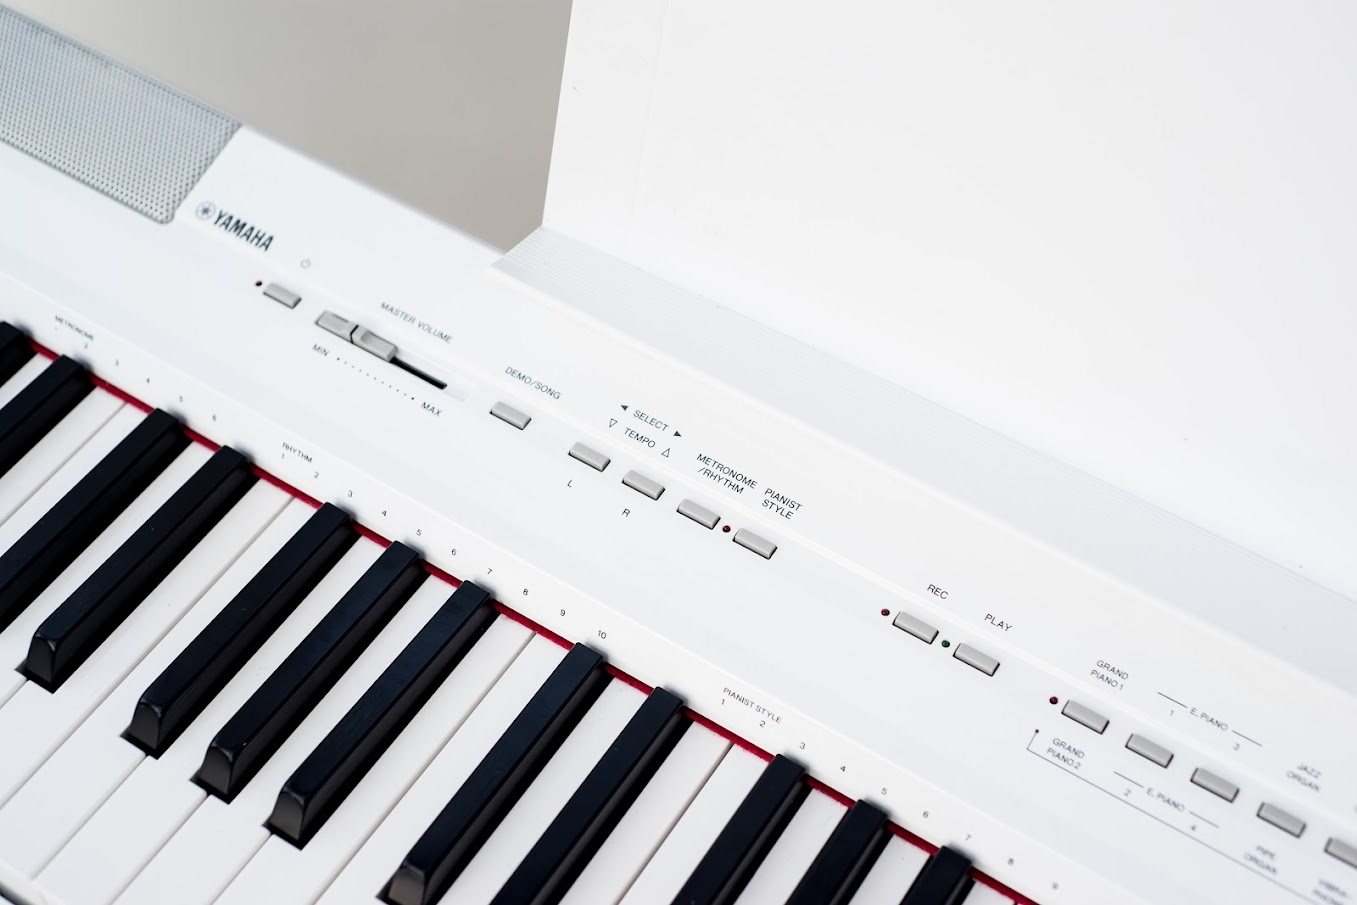 yamaha p105 wh digital piano 88 notes key full size ghe weighted keyboard stand ebay. Black Bedroom Furniture Sets. Home Design Ideas